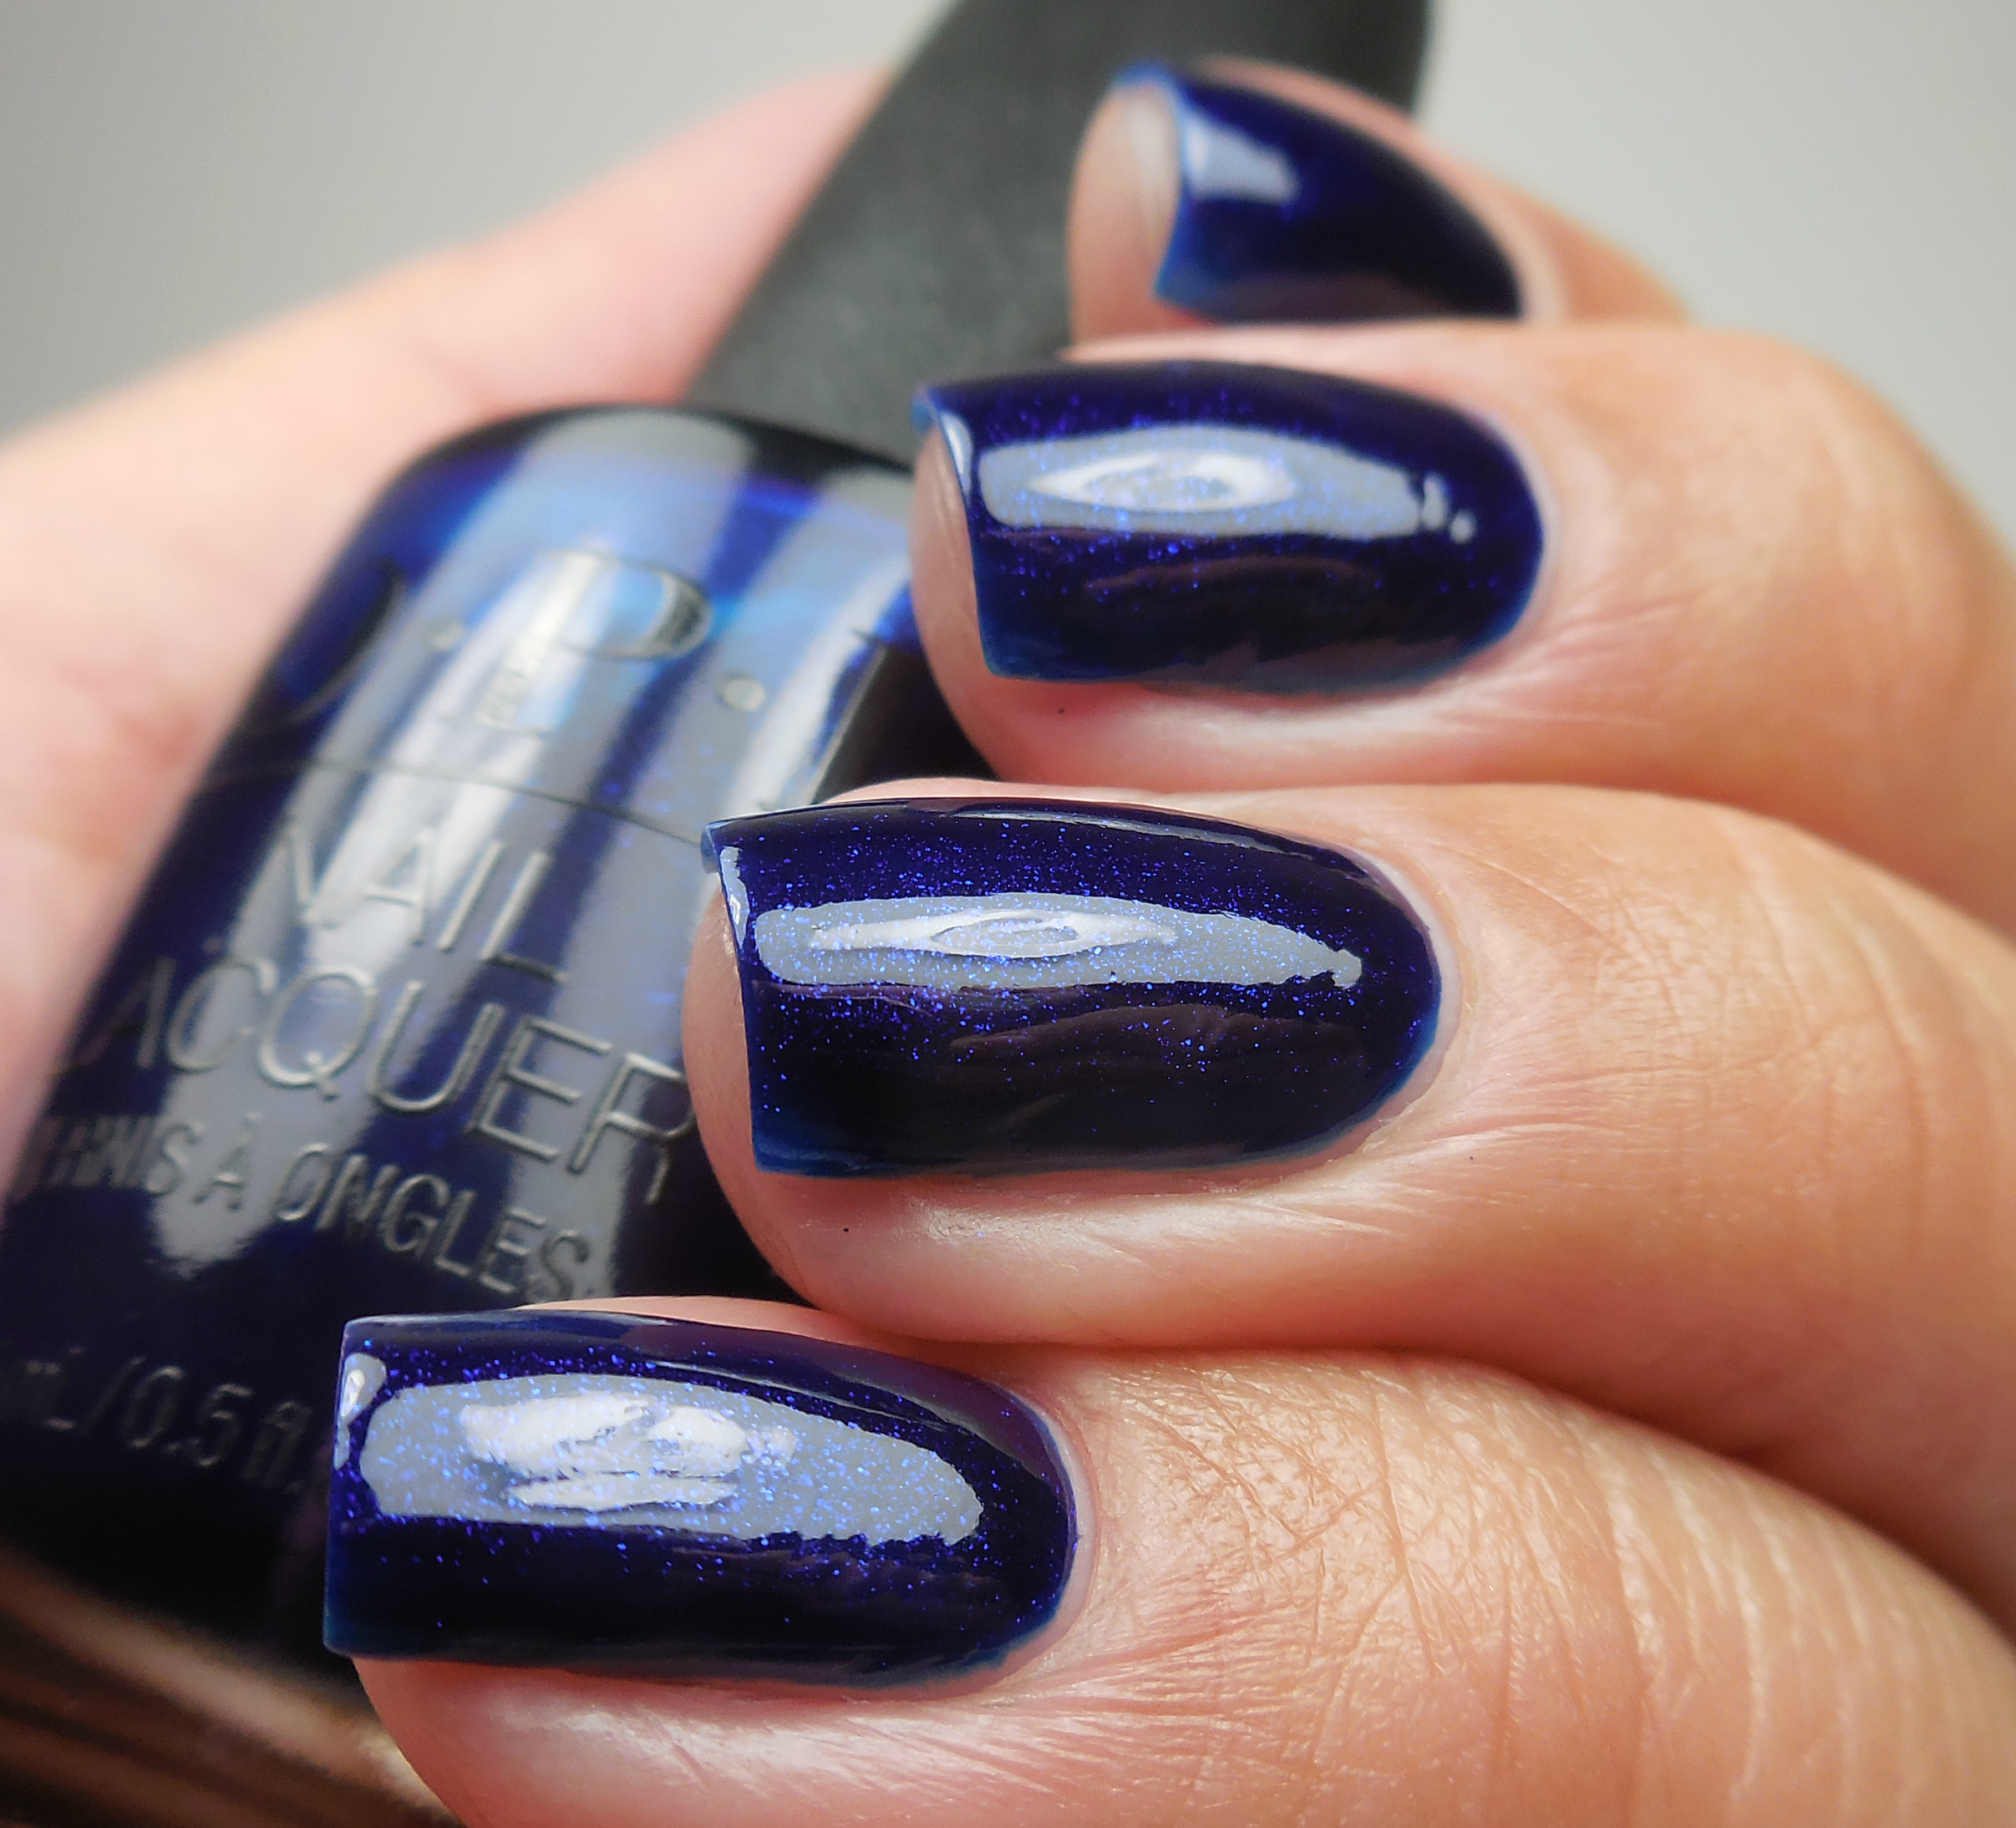 Opi Chills Are Multiplying 3 Of Life And Lacquer